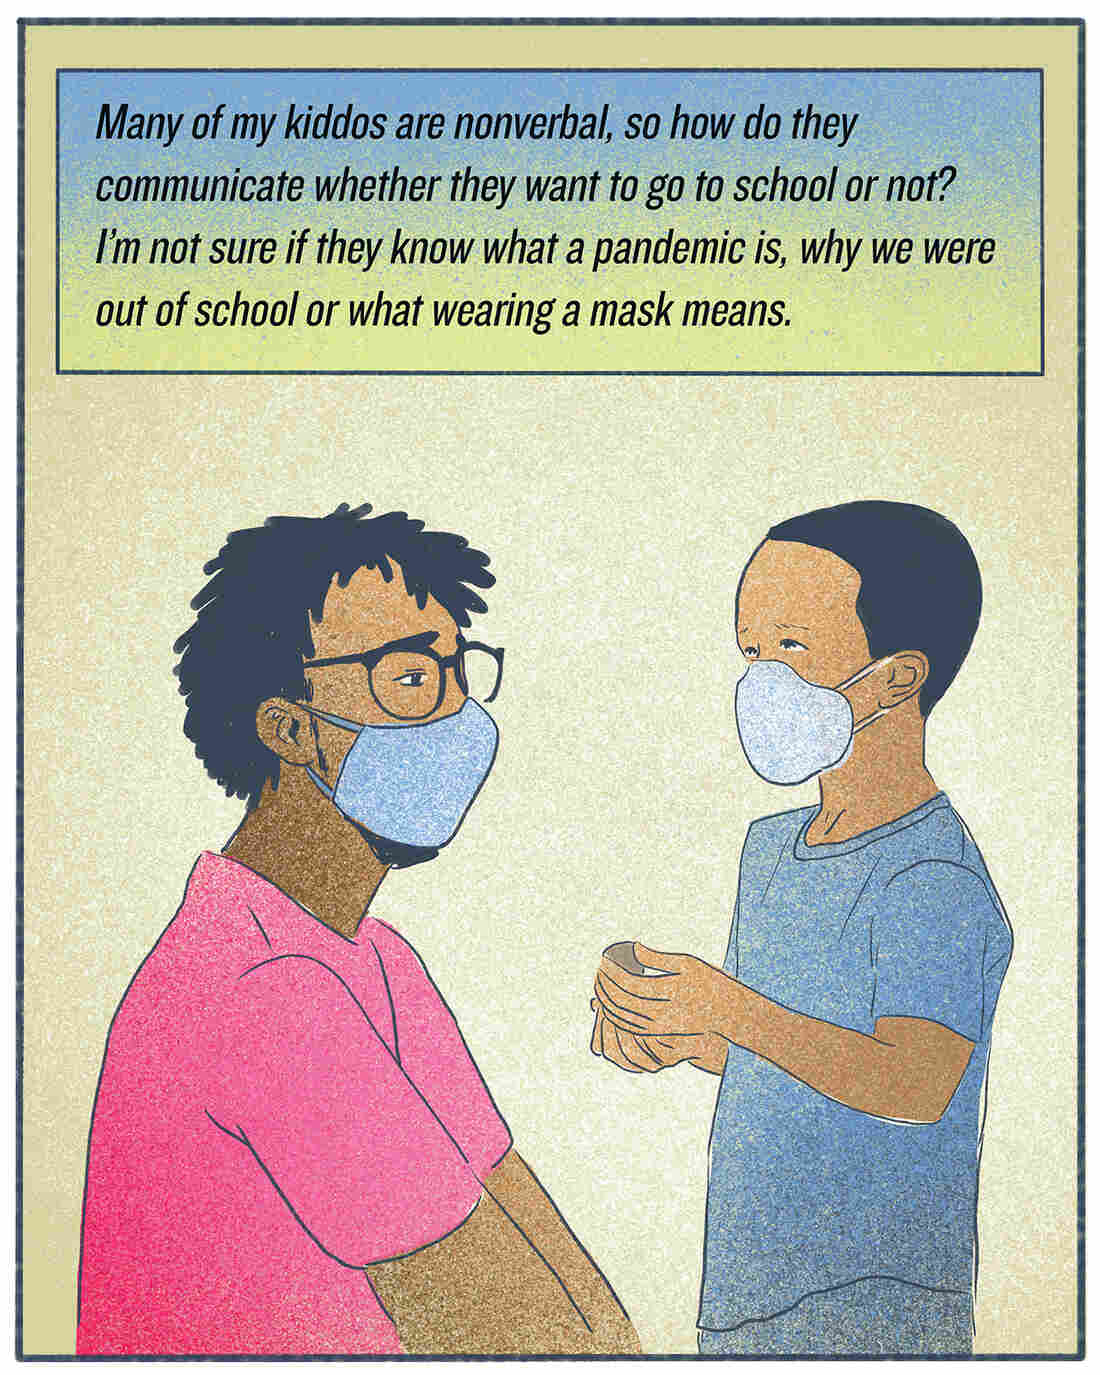 """""""Many of my kiddos are nonverbal, so how do they communicate whether they want to go to school or not? I'm not sure if they know what a pandemic is, why we were out of school or what wearing a mask means."""""""